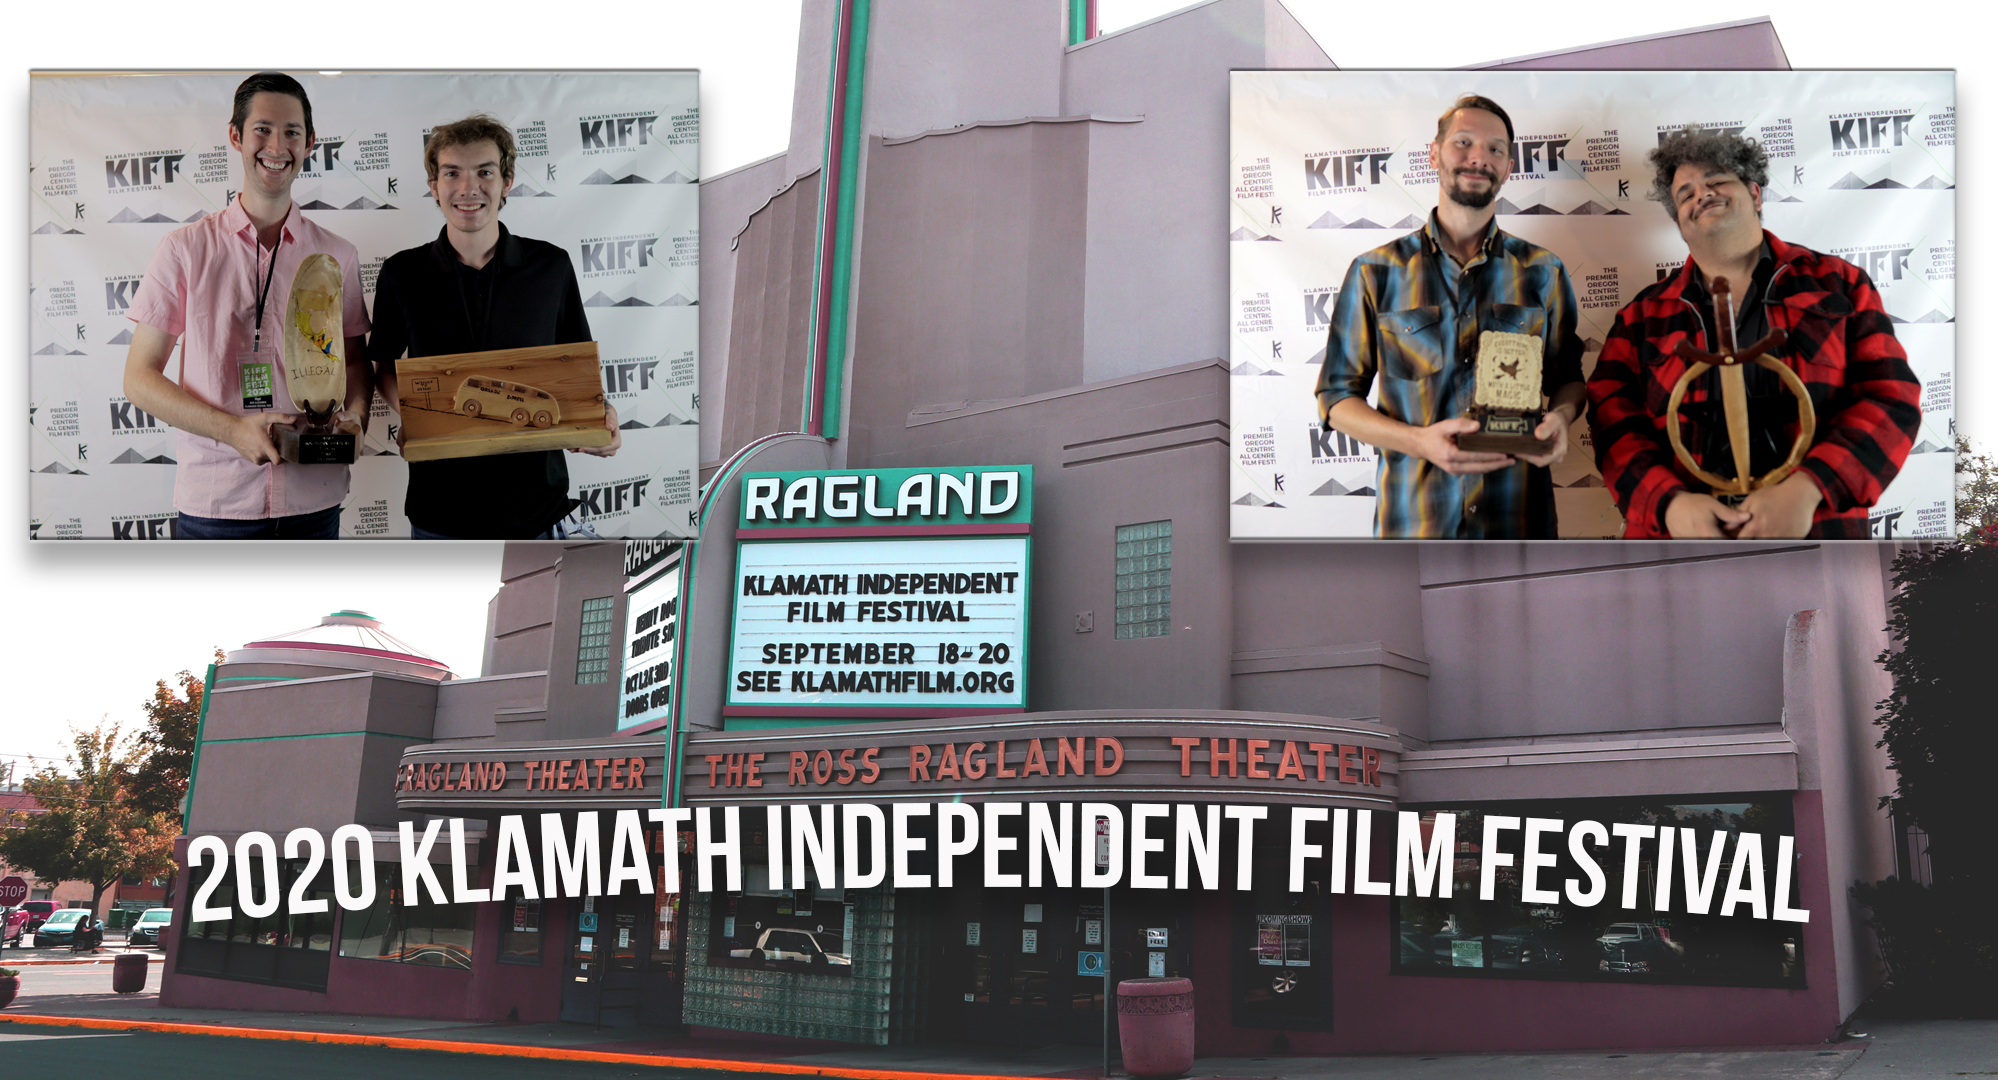 Award winners announced at 2020 Klamath Independent Film Festival